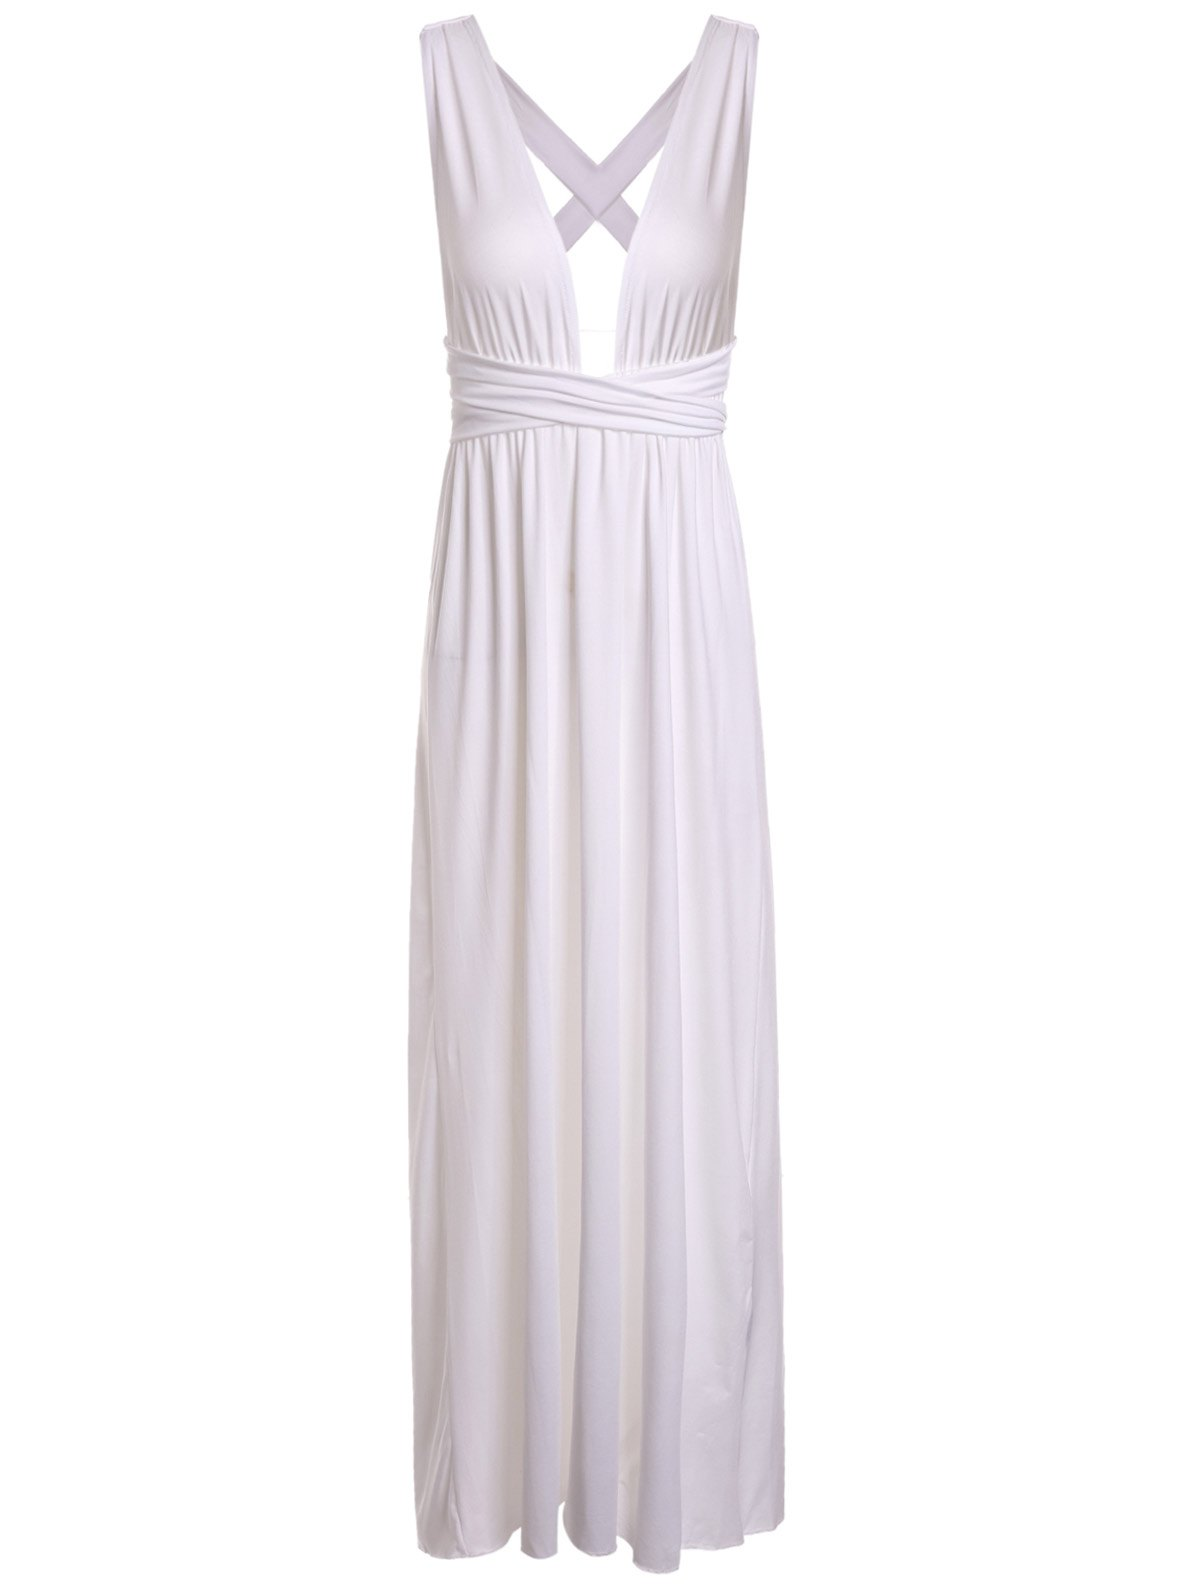 Sexy Criss-Cross Plunging Neck Candy Color Sleeveless Dress For Women - WHITE M